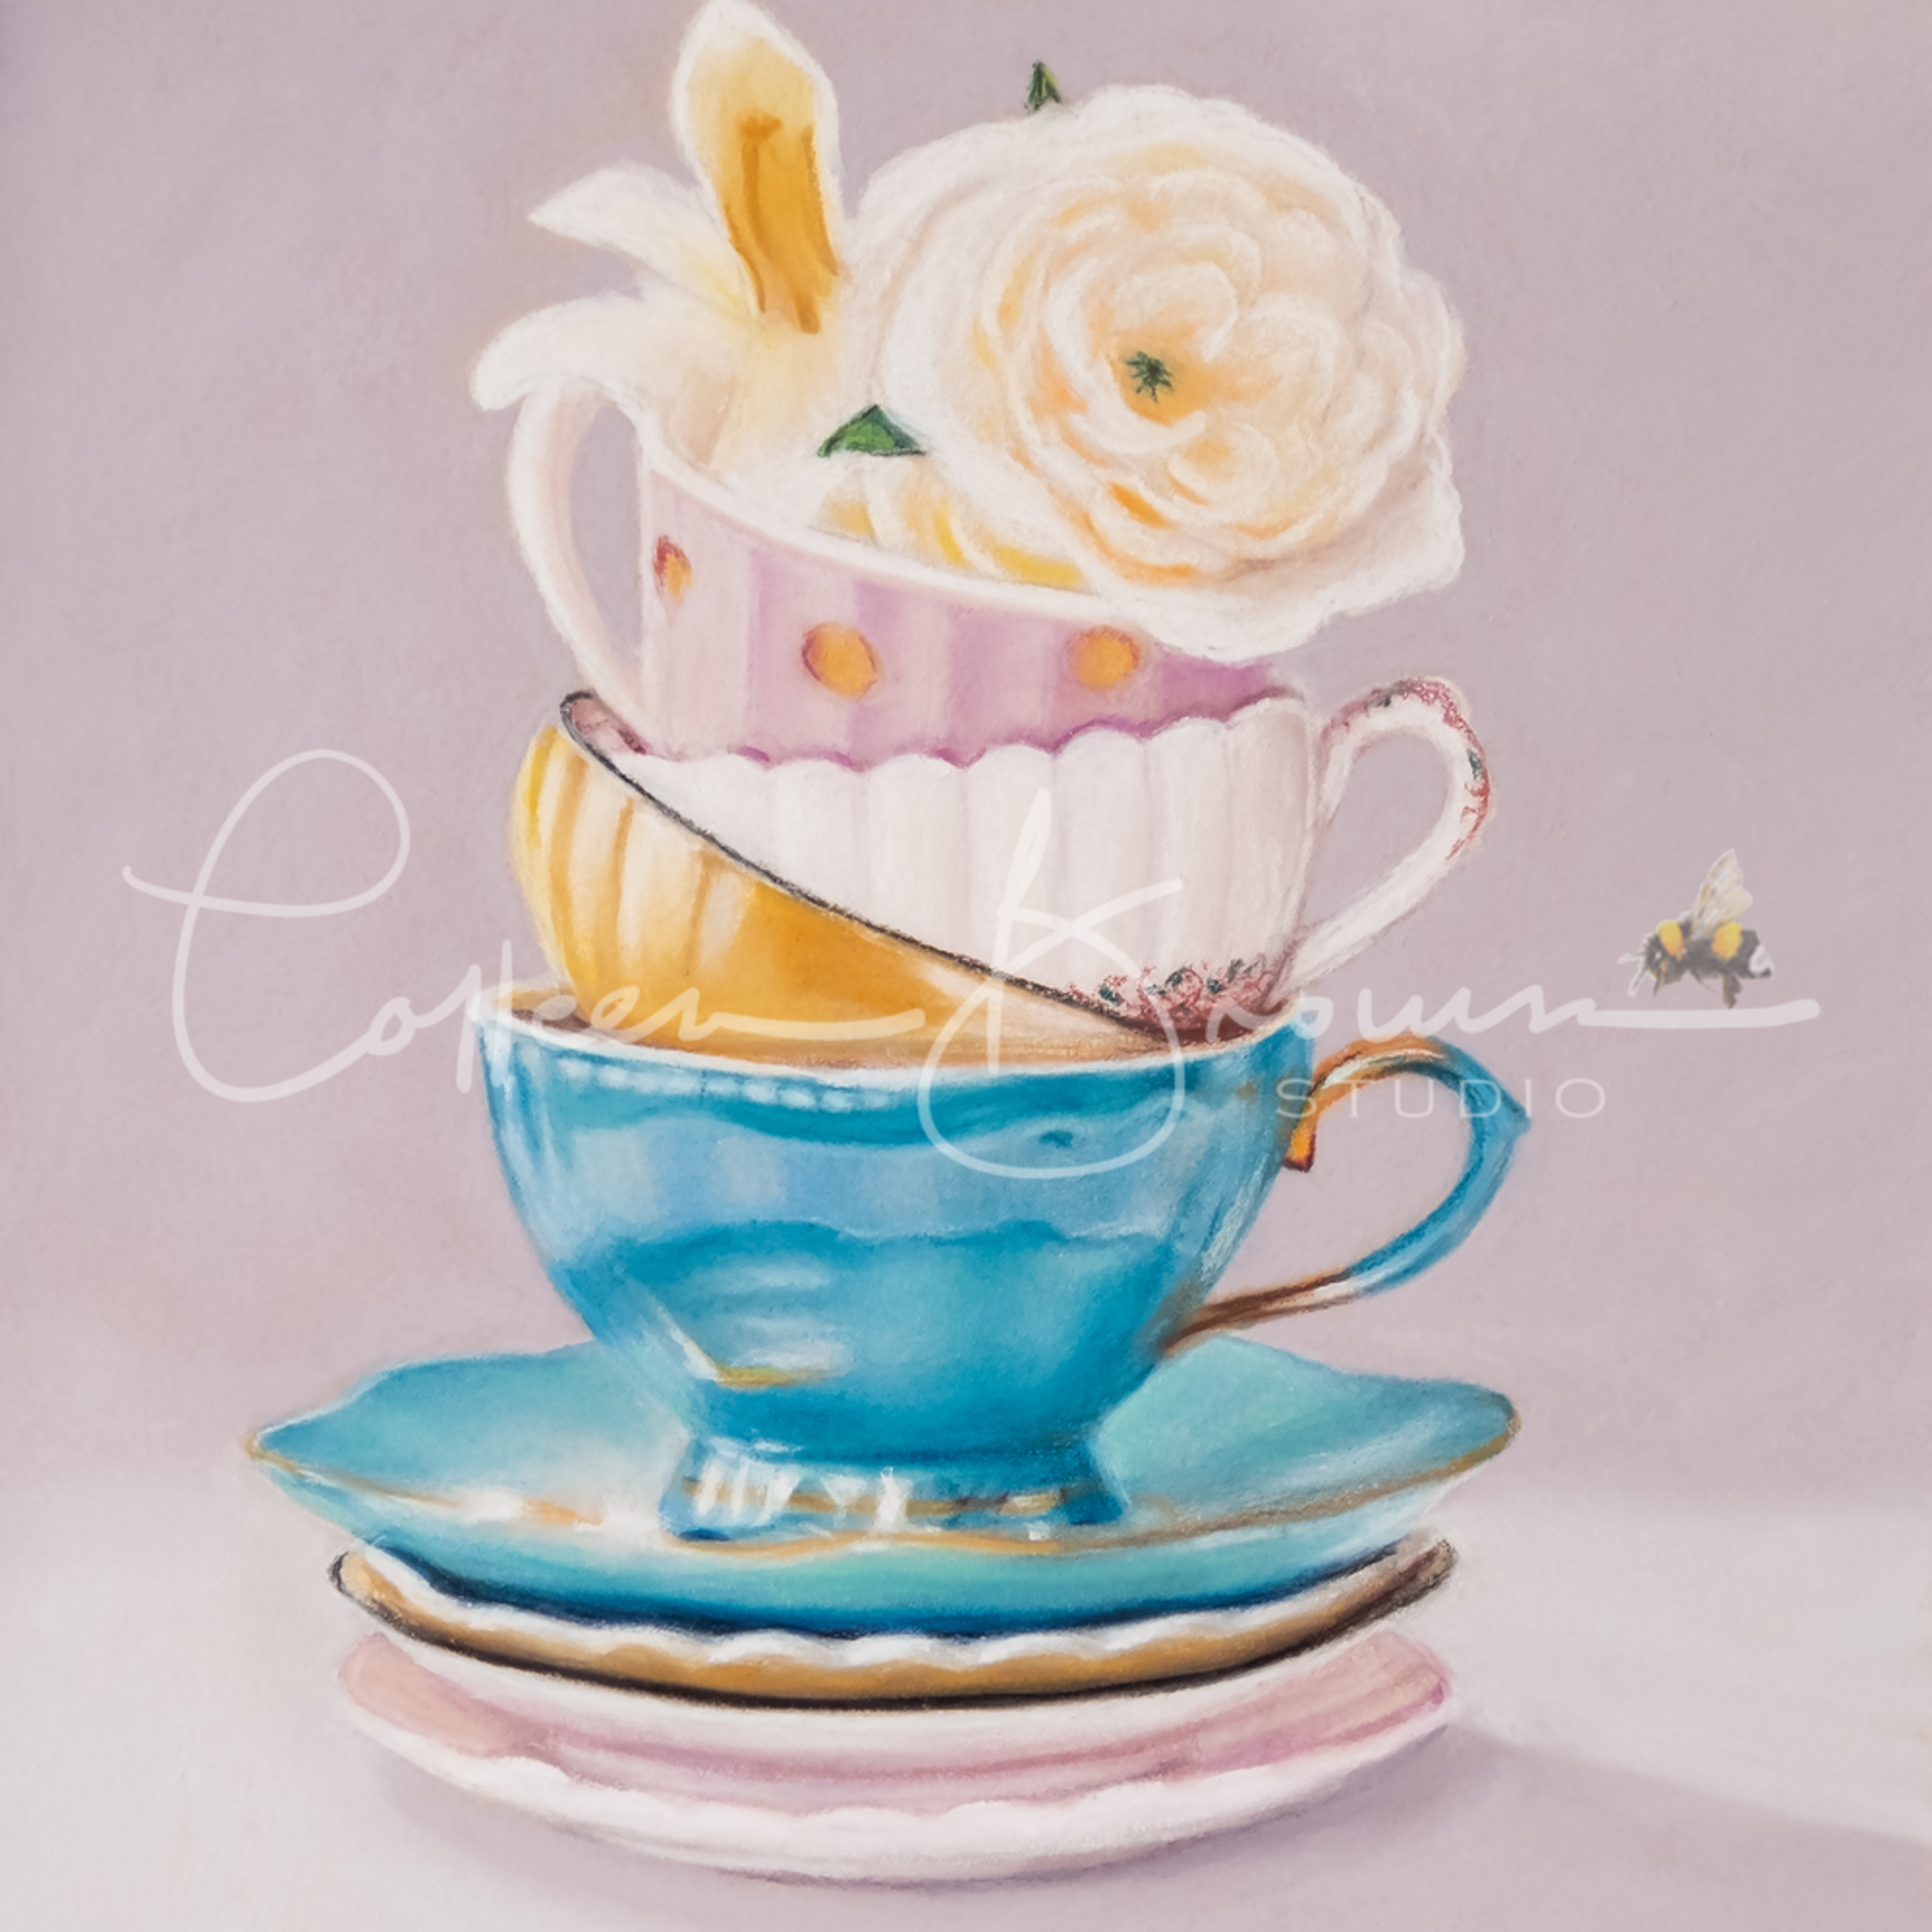 Afternoontea print 12x16inch 2x vph5rw